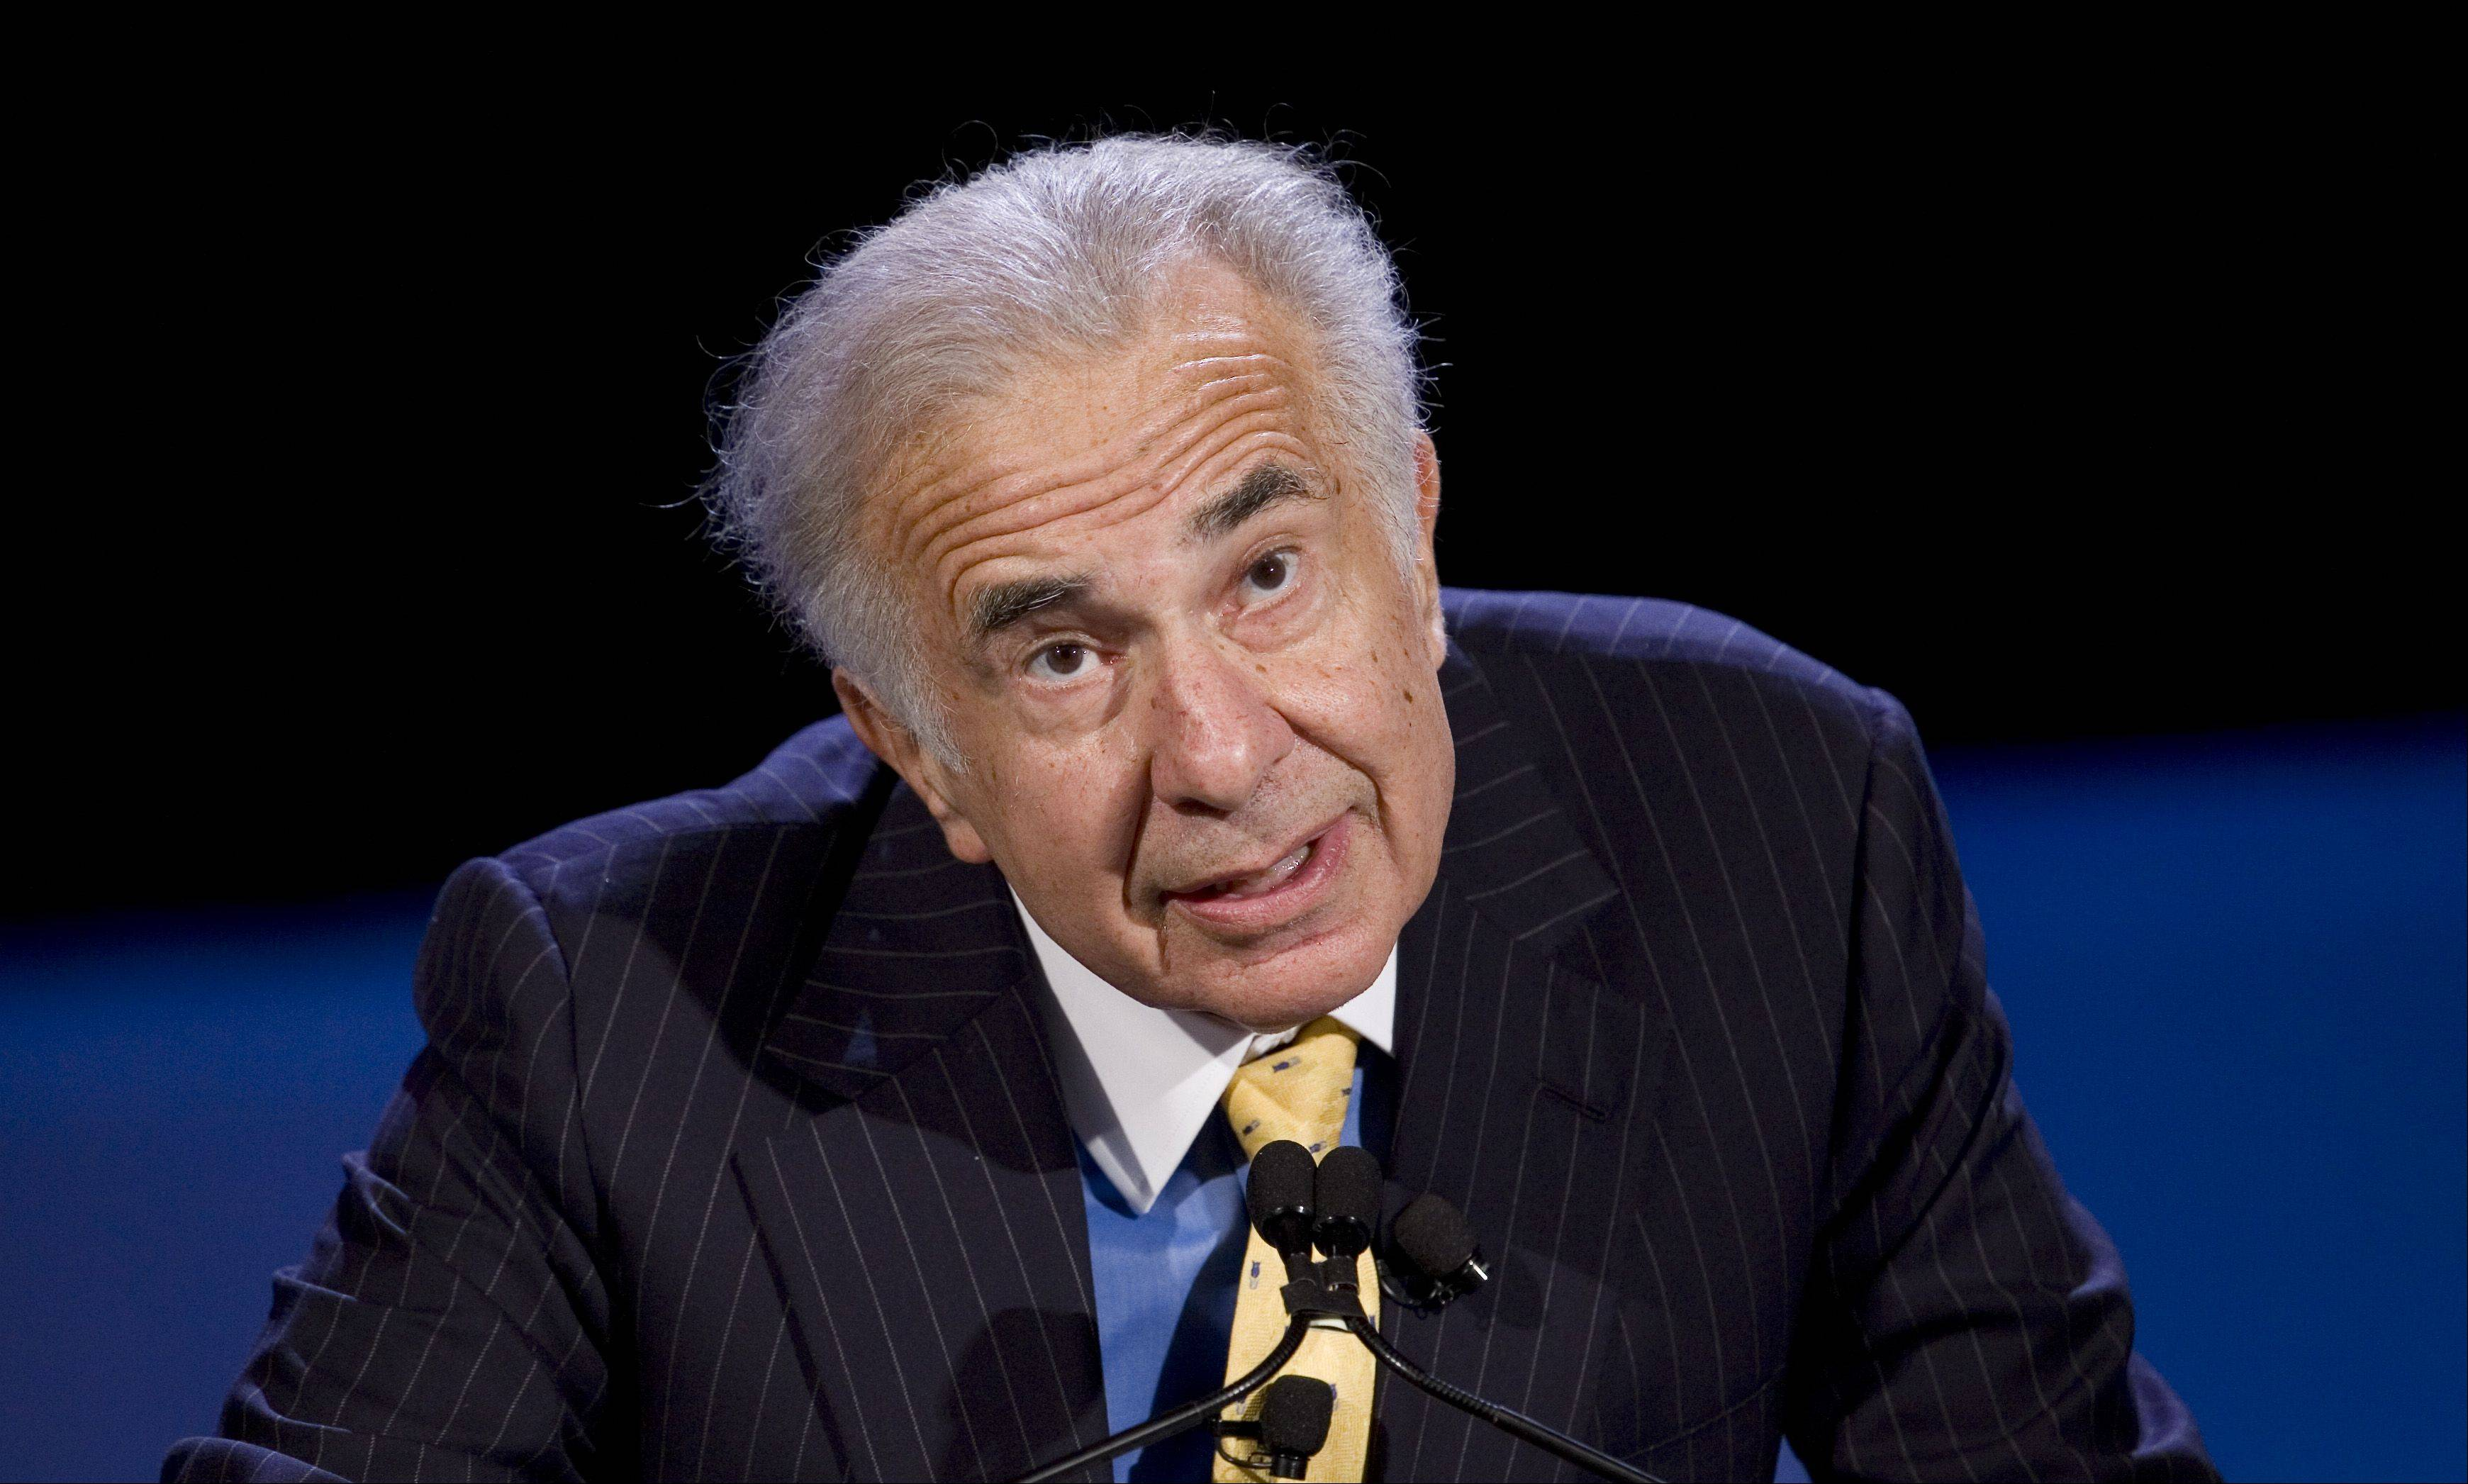 Private equity investor Carl Icahn